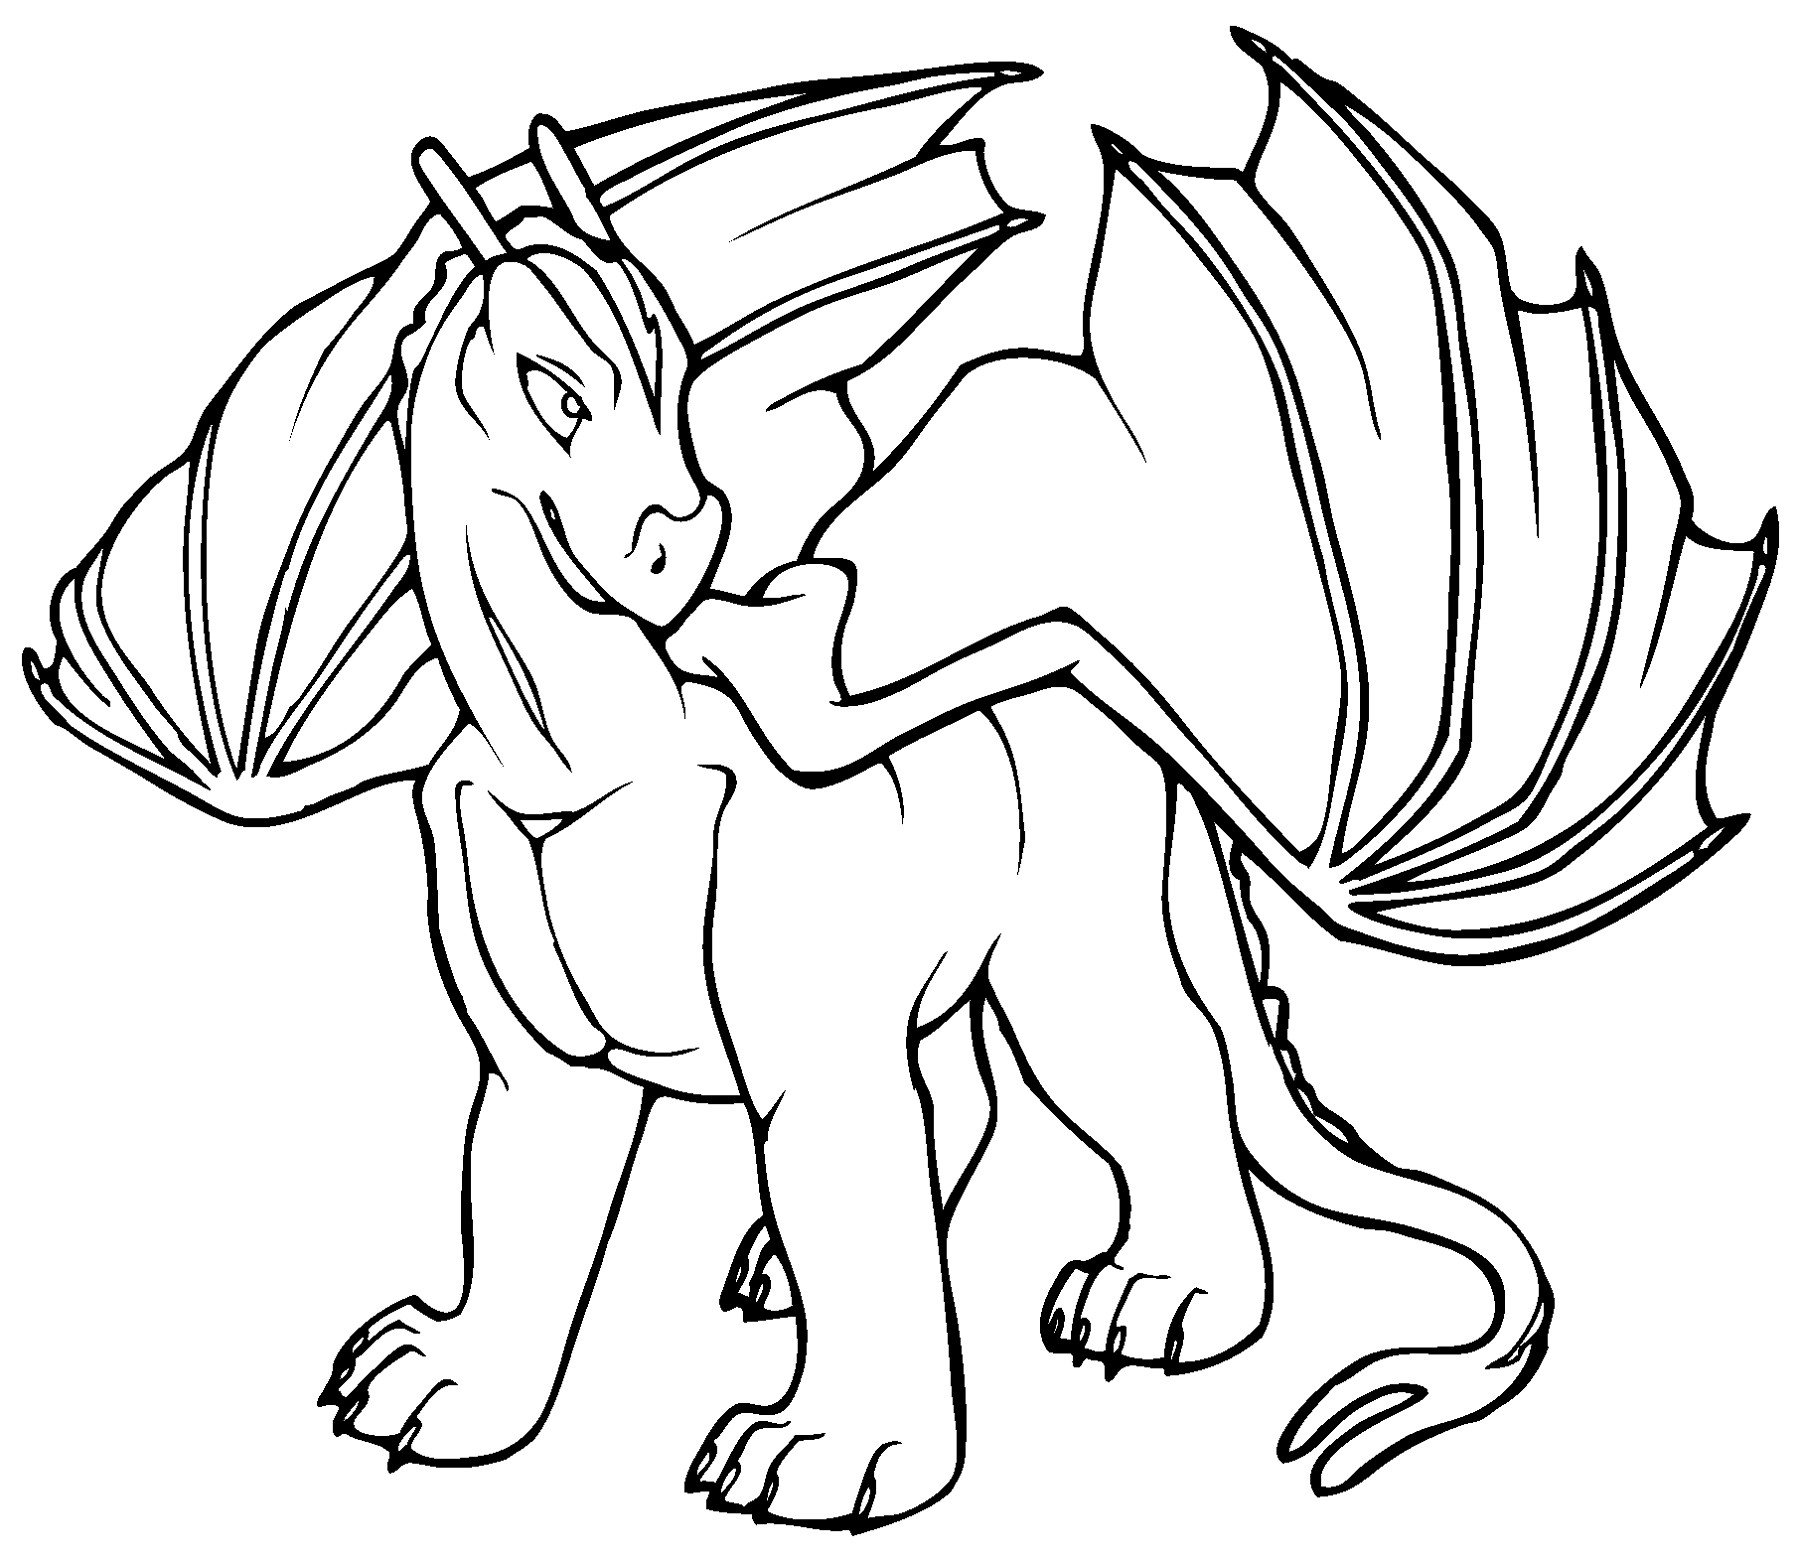 Dragon pictures to color and print